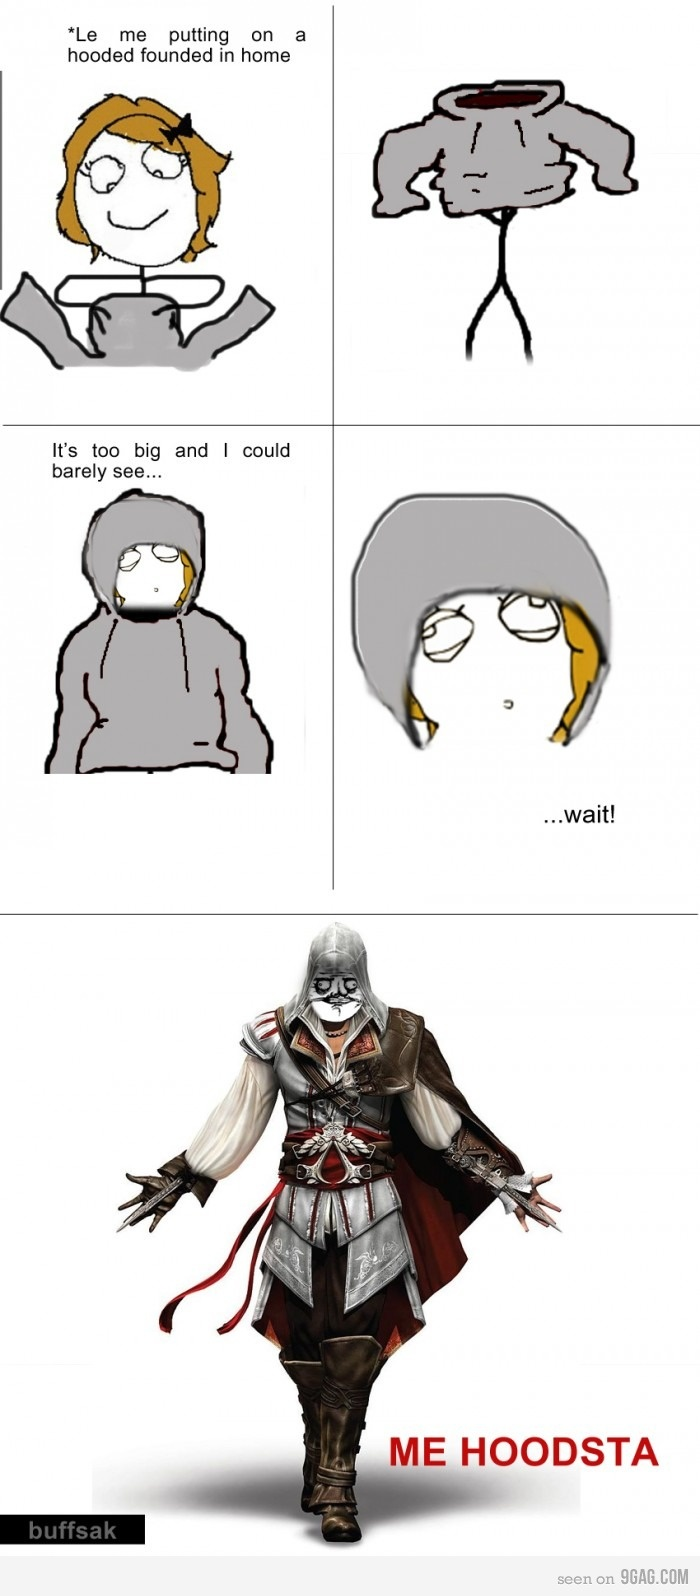 assassins creed: Assassins Creed Memes, Assassins Creed 2, Assassins Creed Hoodie, Videos Games, So True, Creed Recipes, Assassins Creed Humor, True Stories, Geeky Stuff